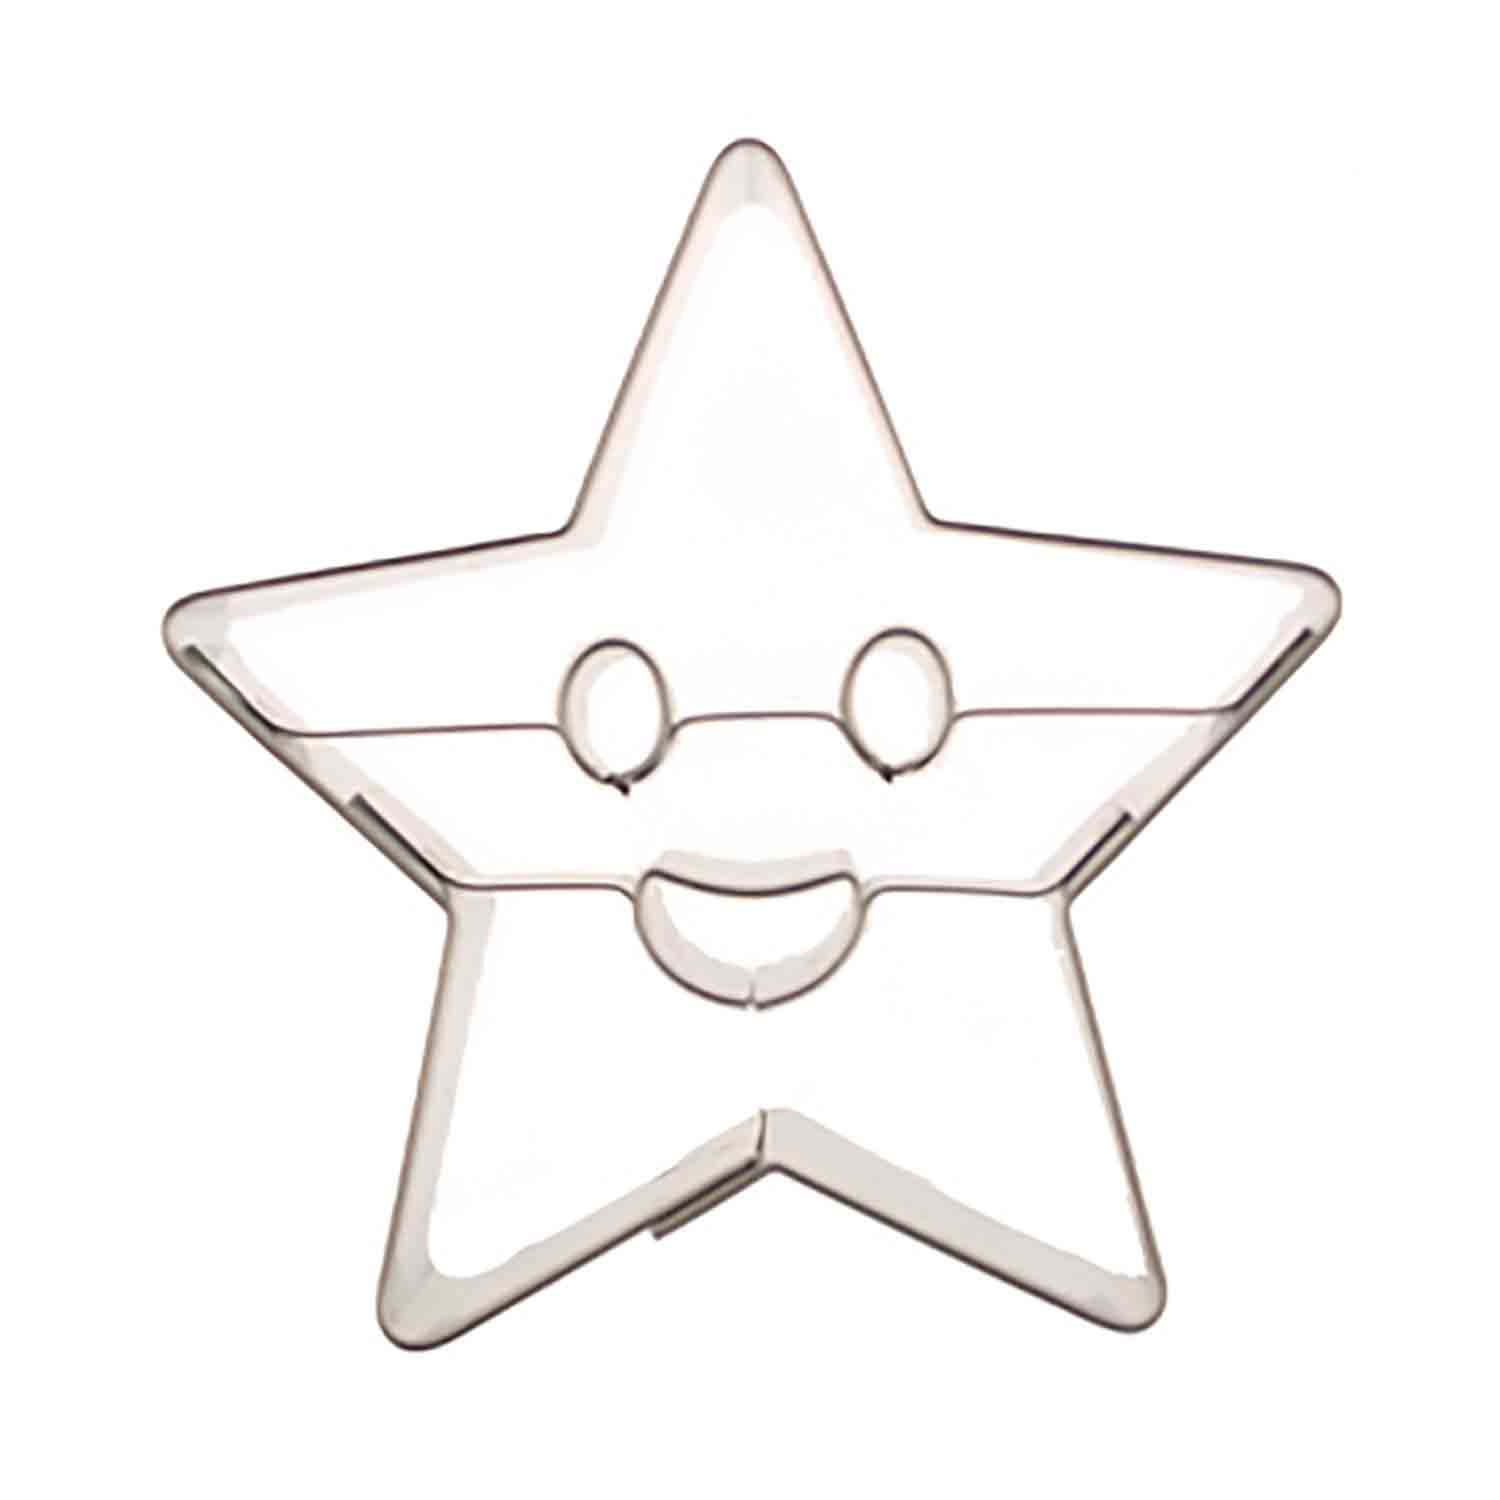 Star Astro Cookie Cutter